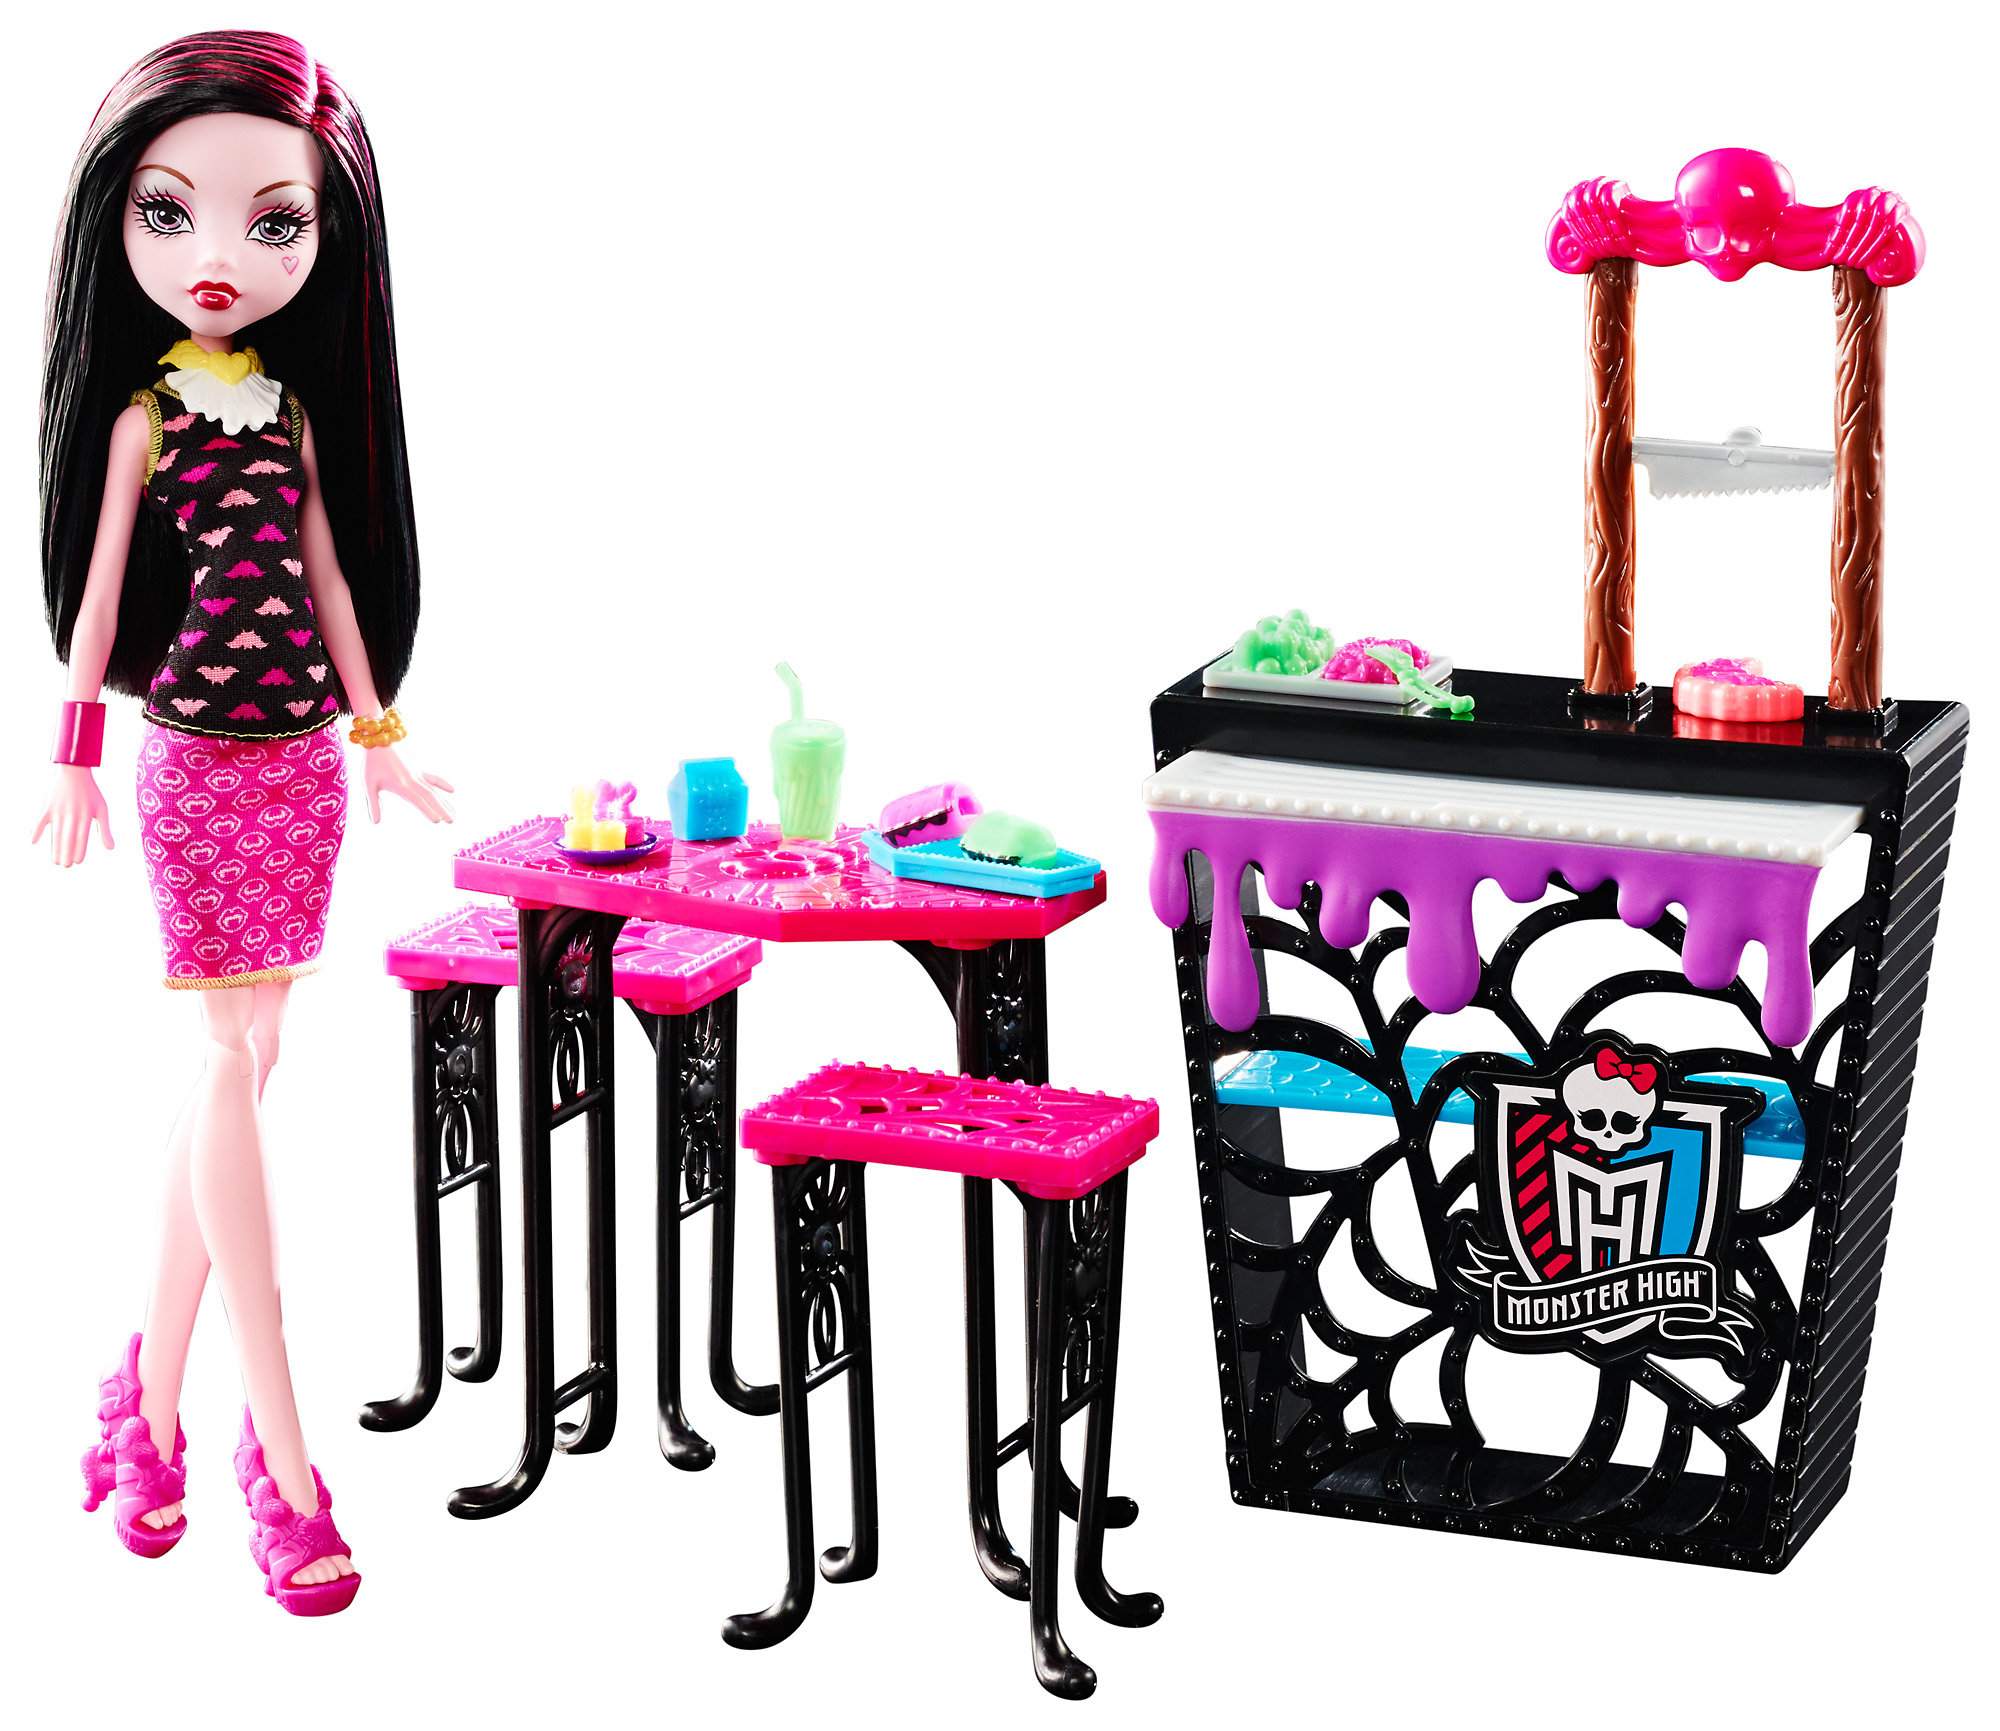 Monster High Beast Bites Caf Draculaura Doll Playset by Mattel